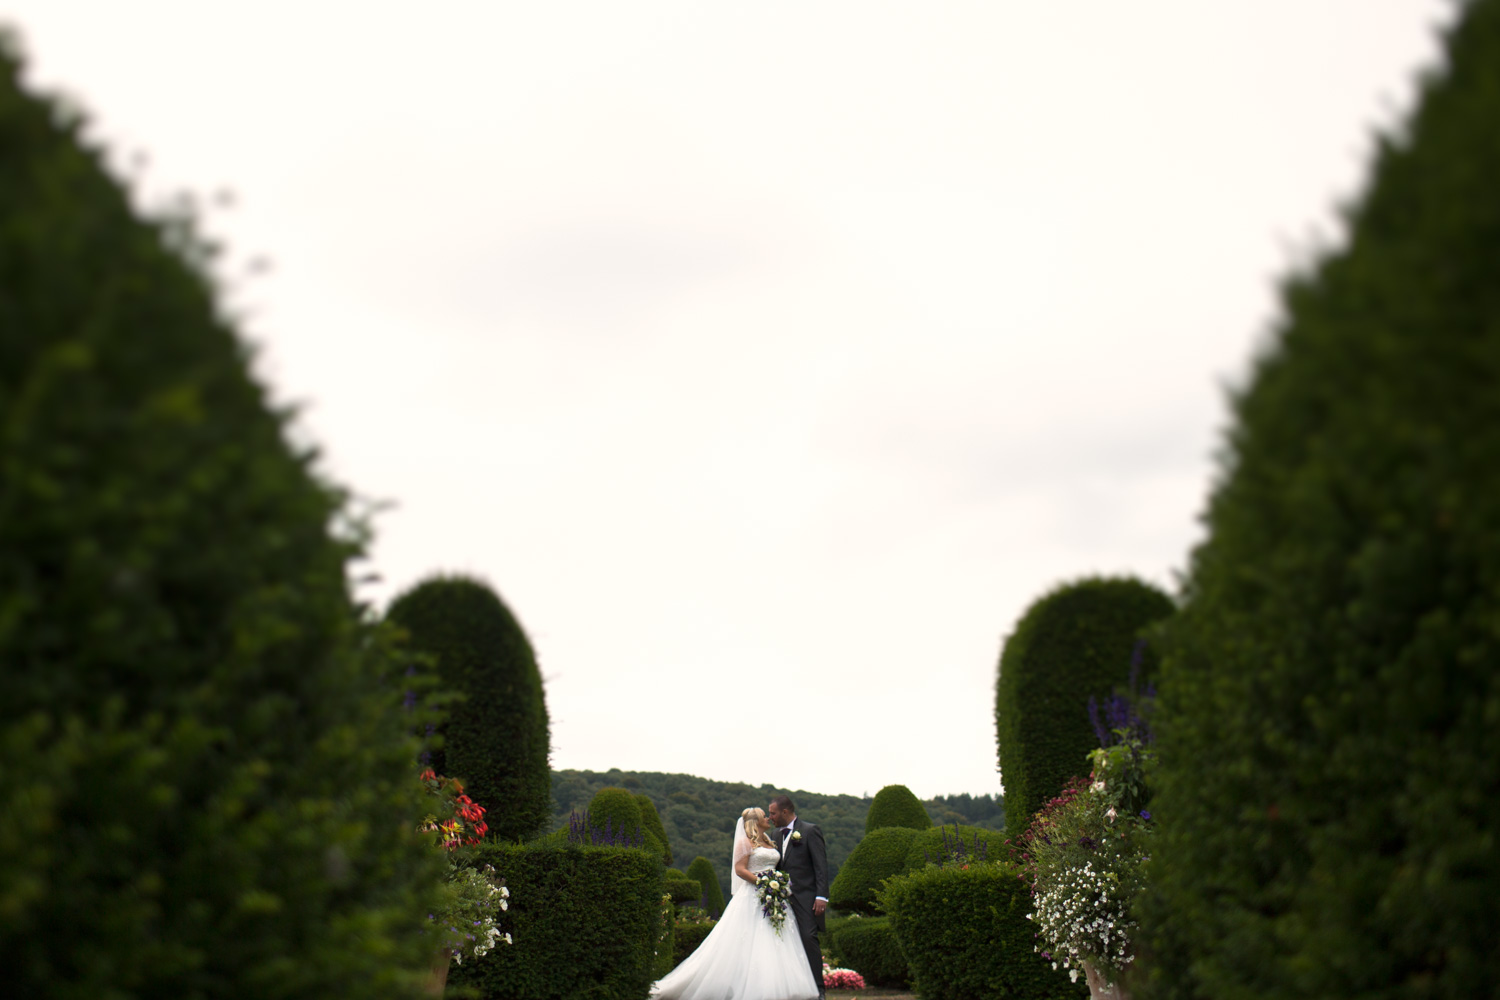 Mark_Barnes_Bristol-wedding-photography-aldwick-court-farm-and-vineyard-wedding-Photography-28.jpg